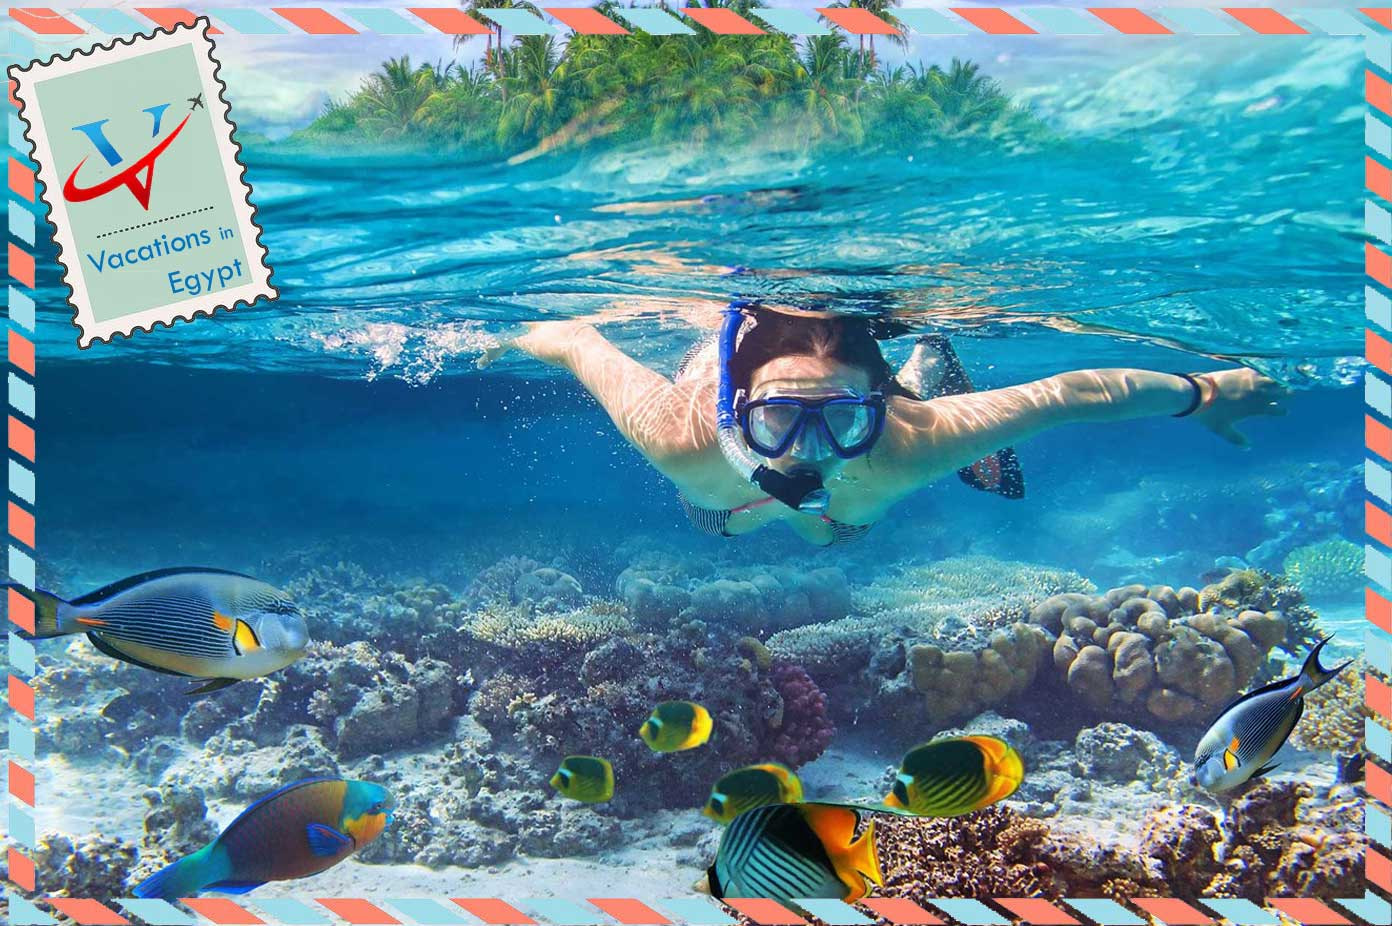 Top 10 things to do in Sharm el sheikh Egypt